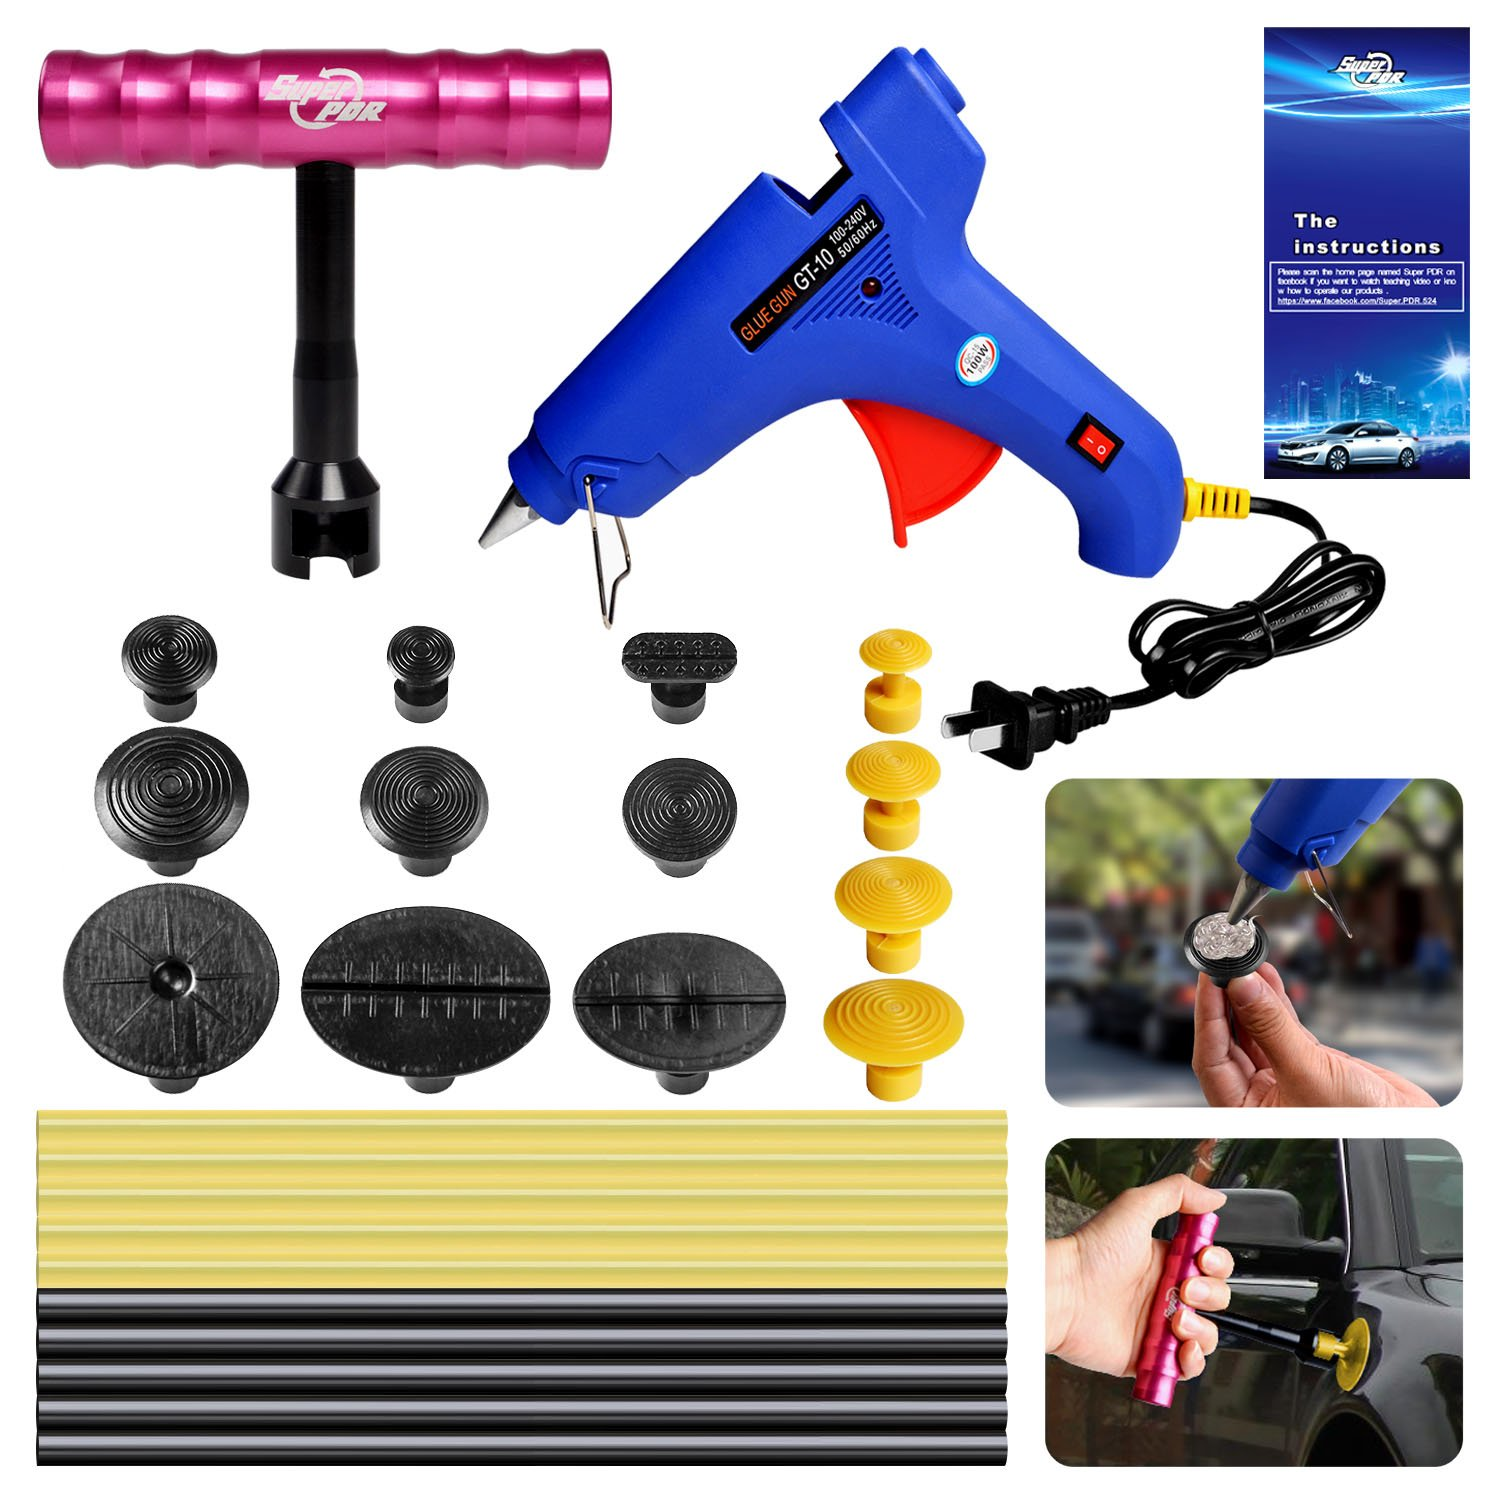 FLY5D/®19Pcs Car Paintless Dent Repair Tools PDR Glue Puller Grip T-handle Dent Puller with 18Pcs Blue Glue Puller